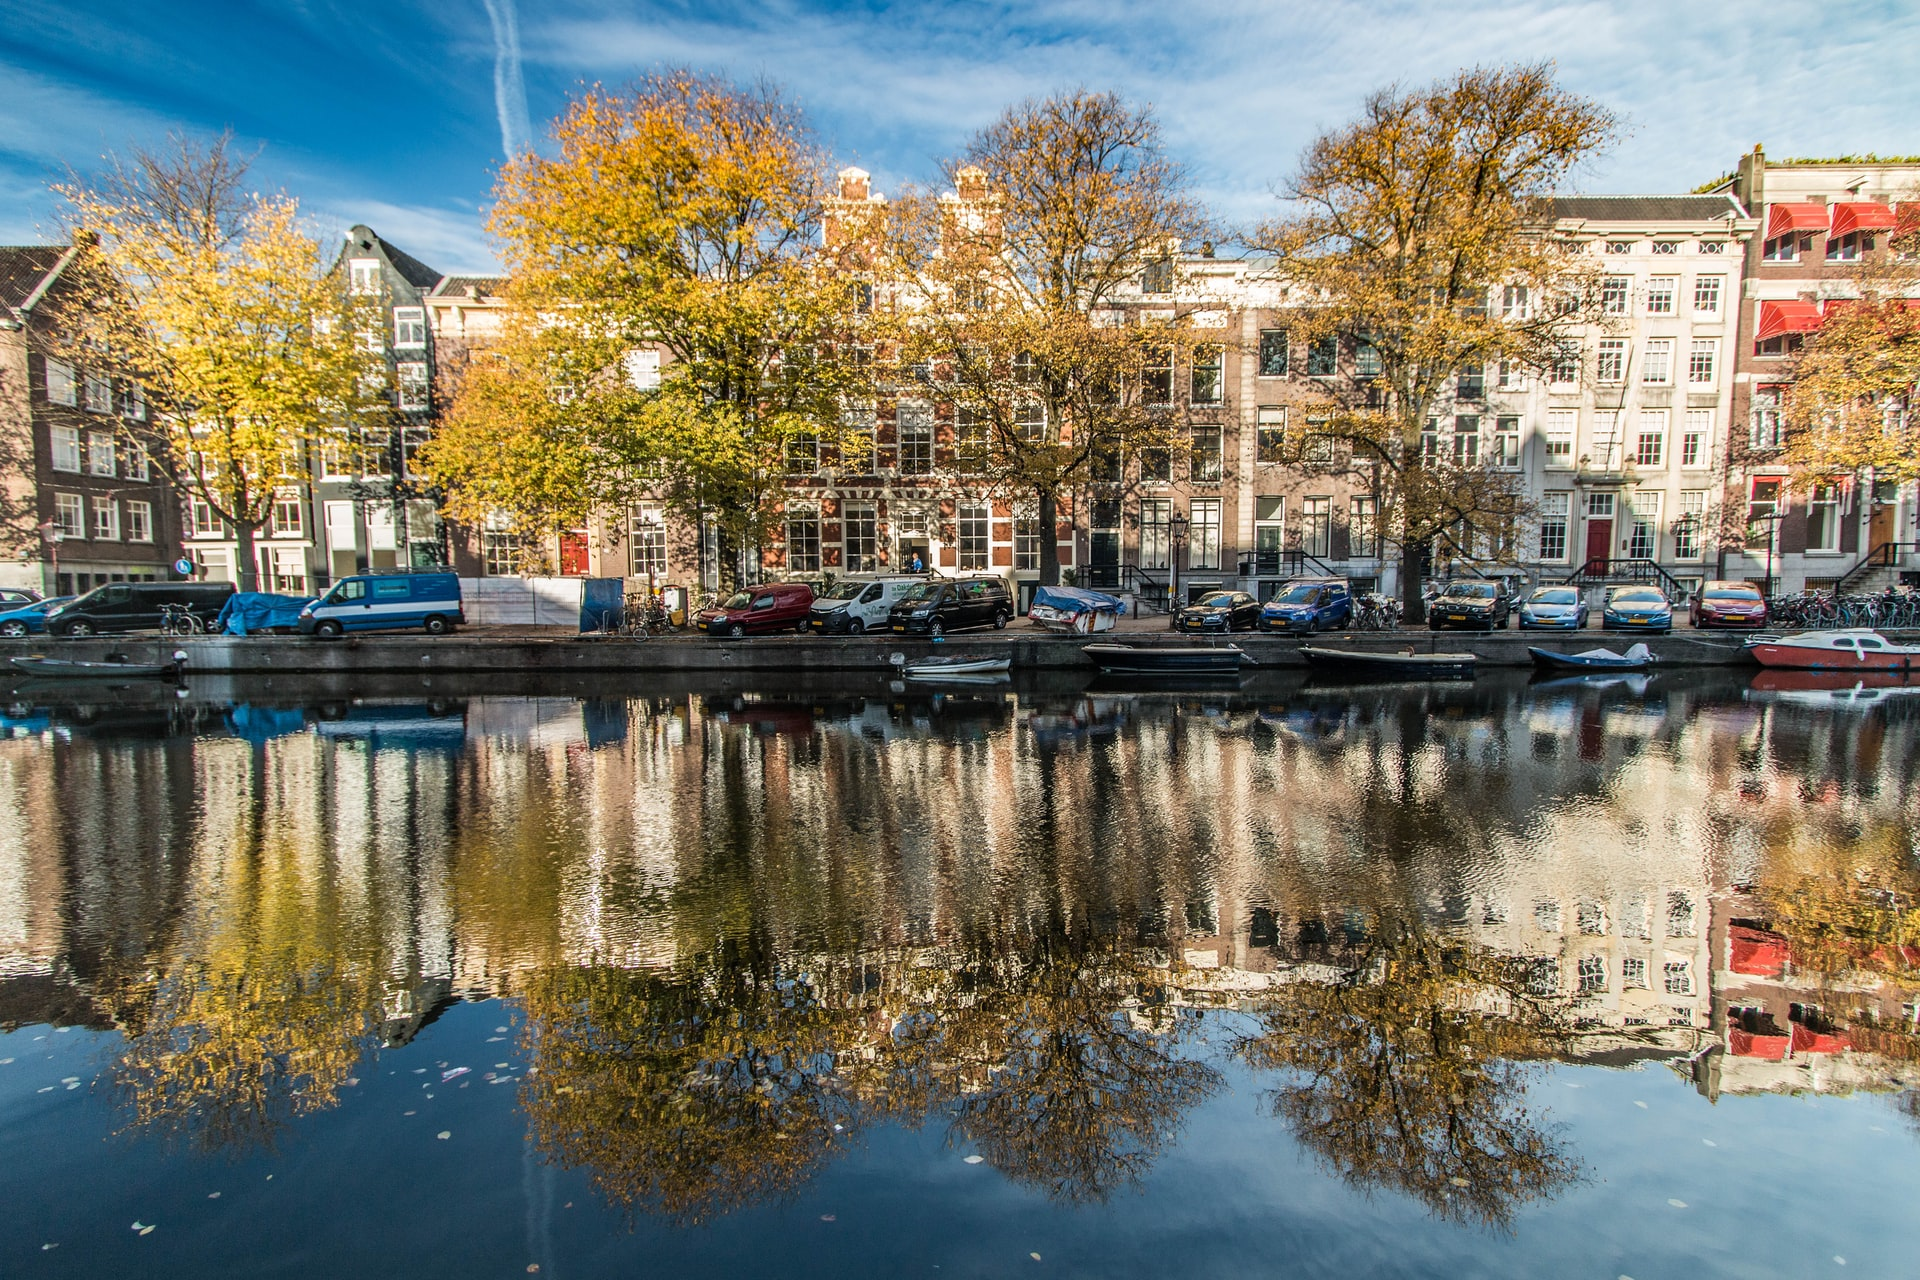 Buildings and trees near a water body with boats in Amsterdam